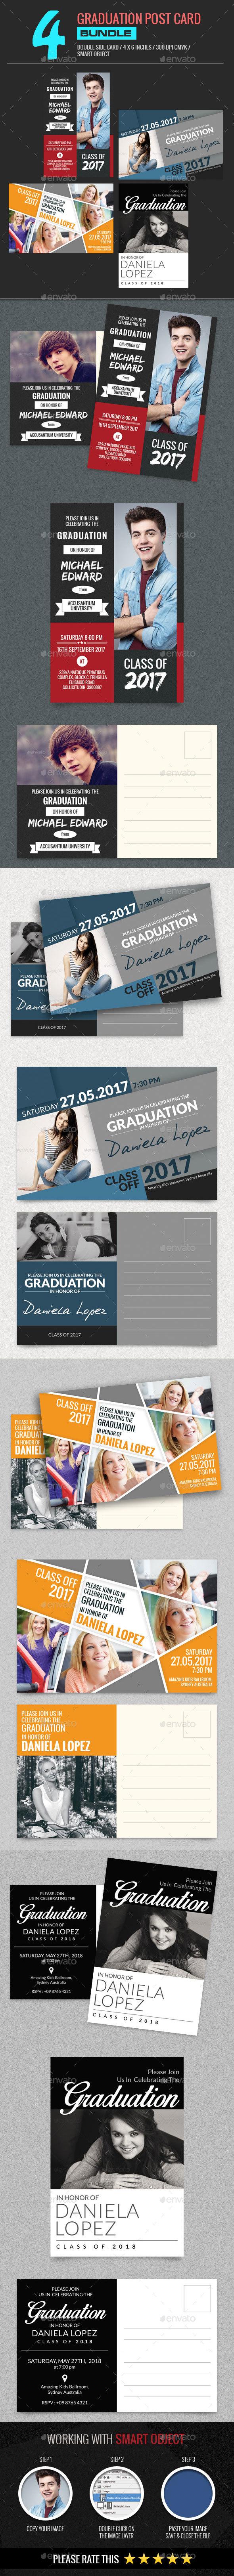 4 In 1 Graduation Post Card - Cards & Invites Print Templates